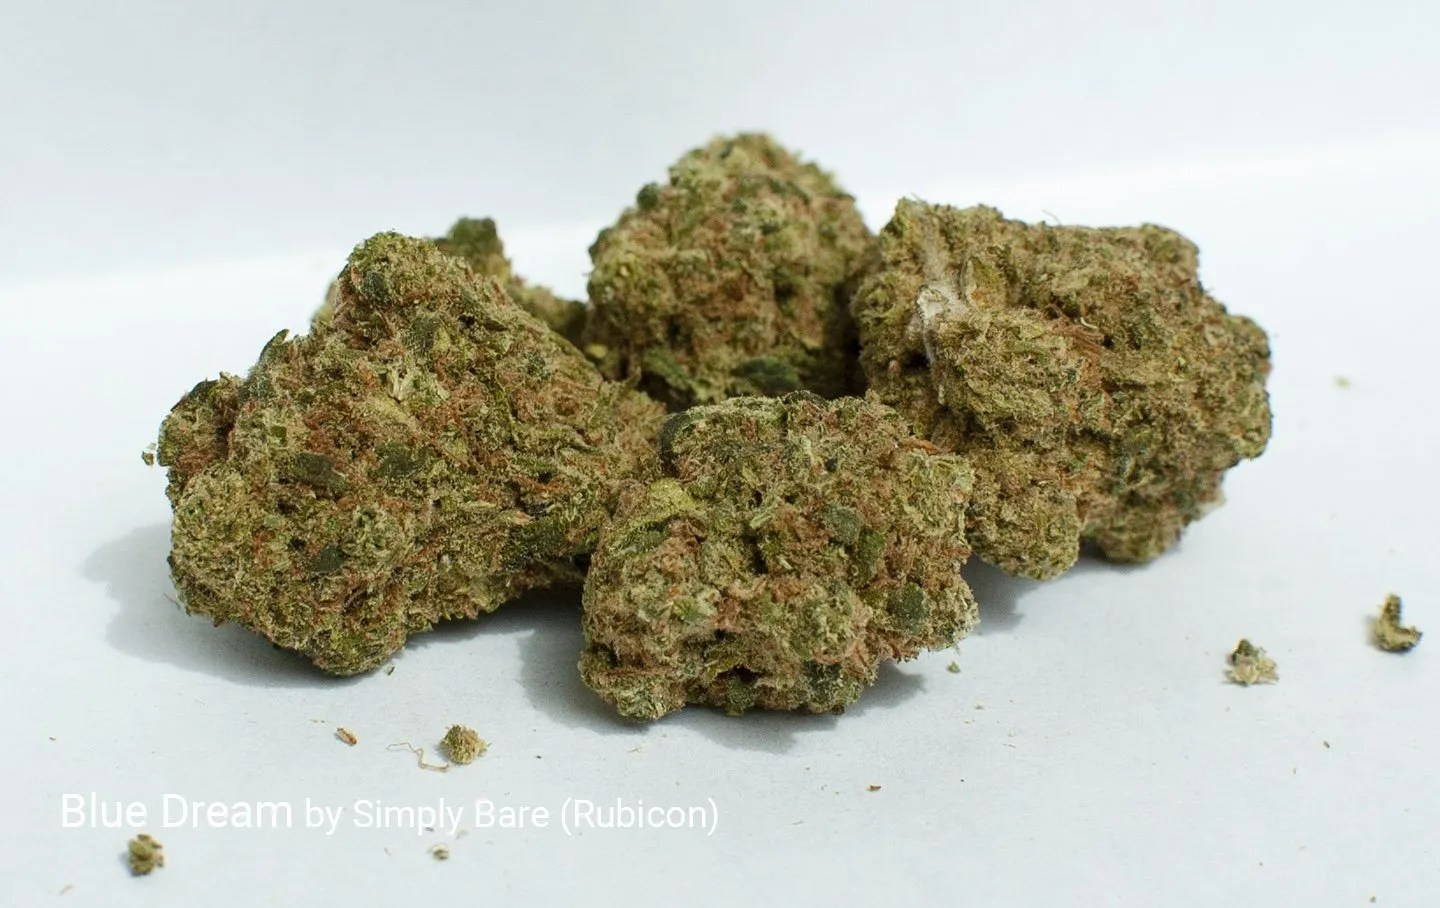 22.0% THC Blue Dream by Simply Bare